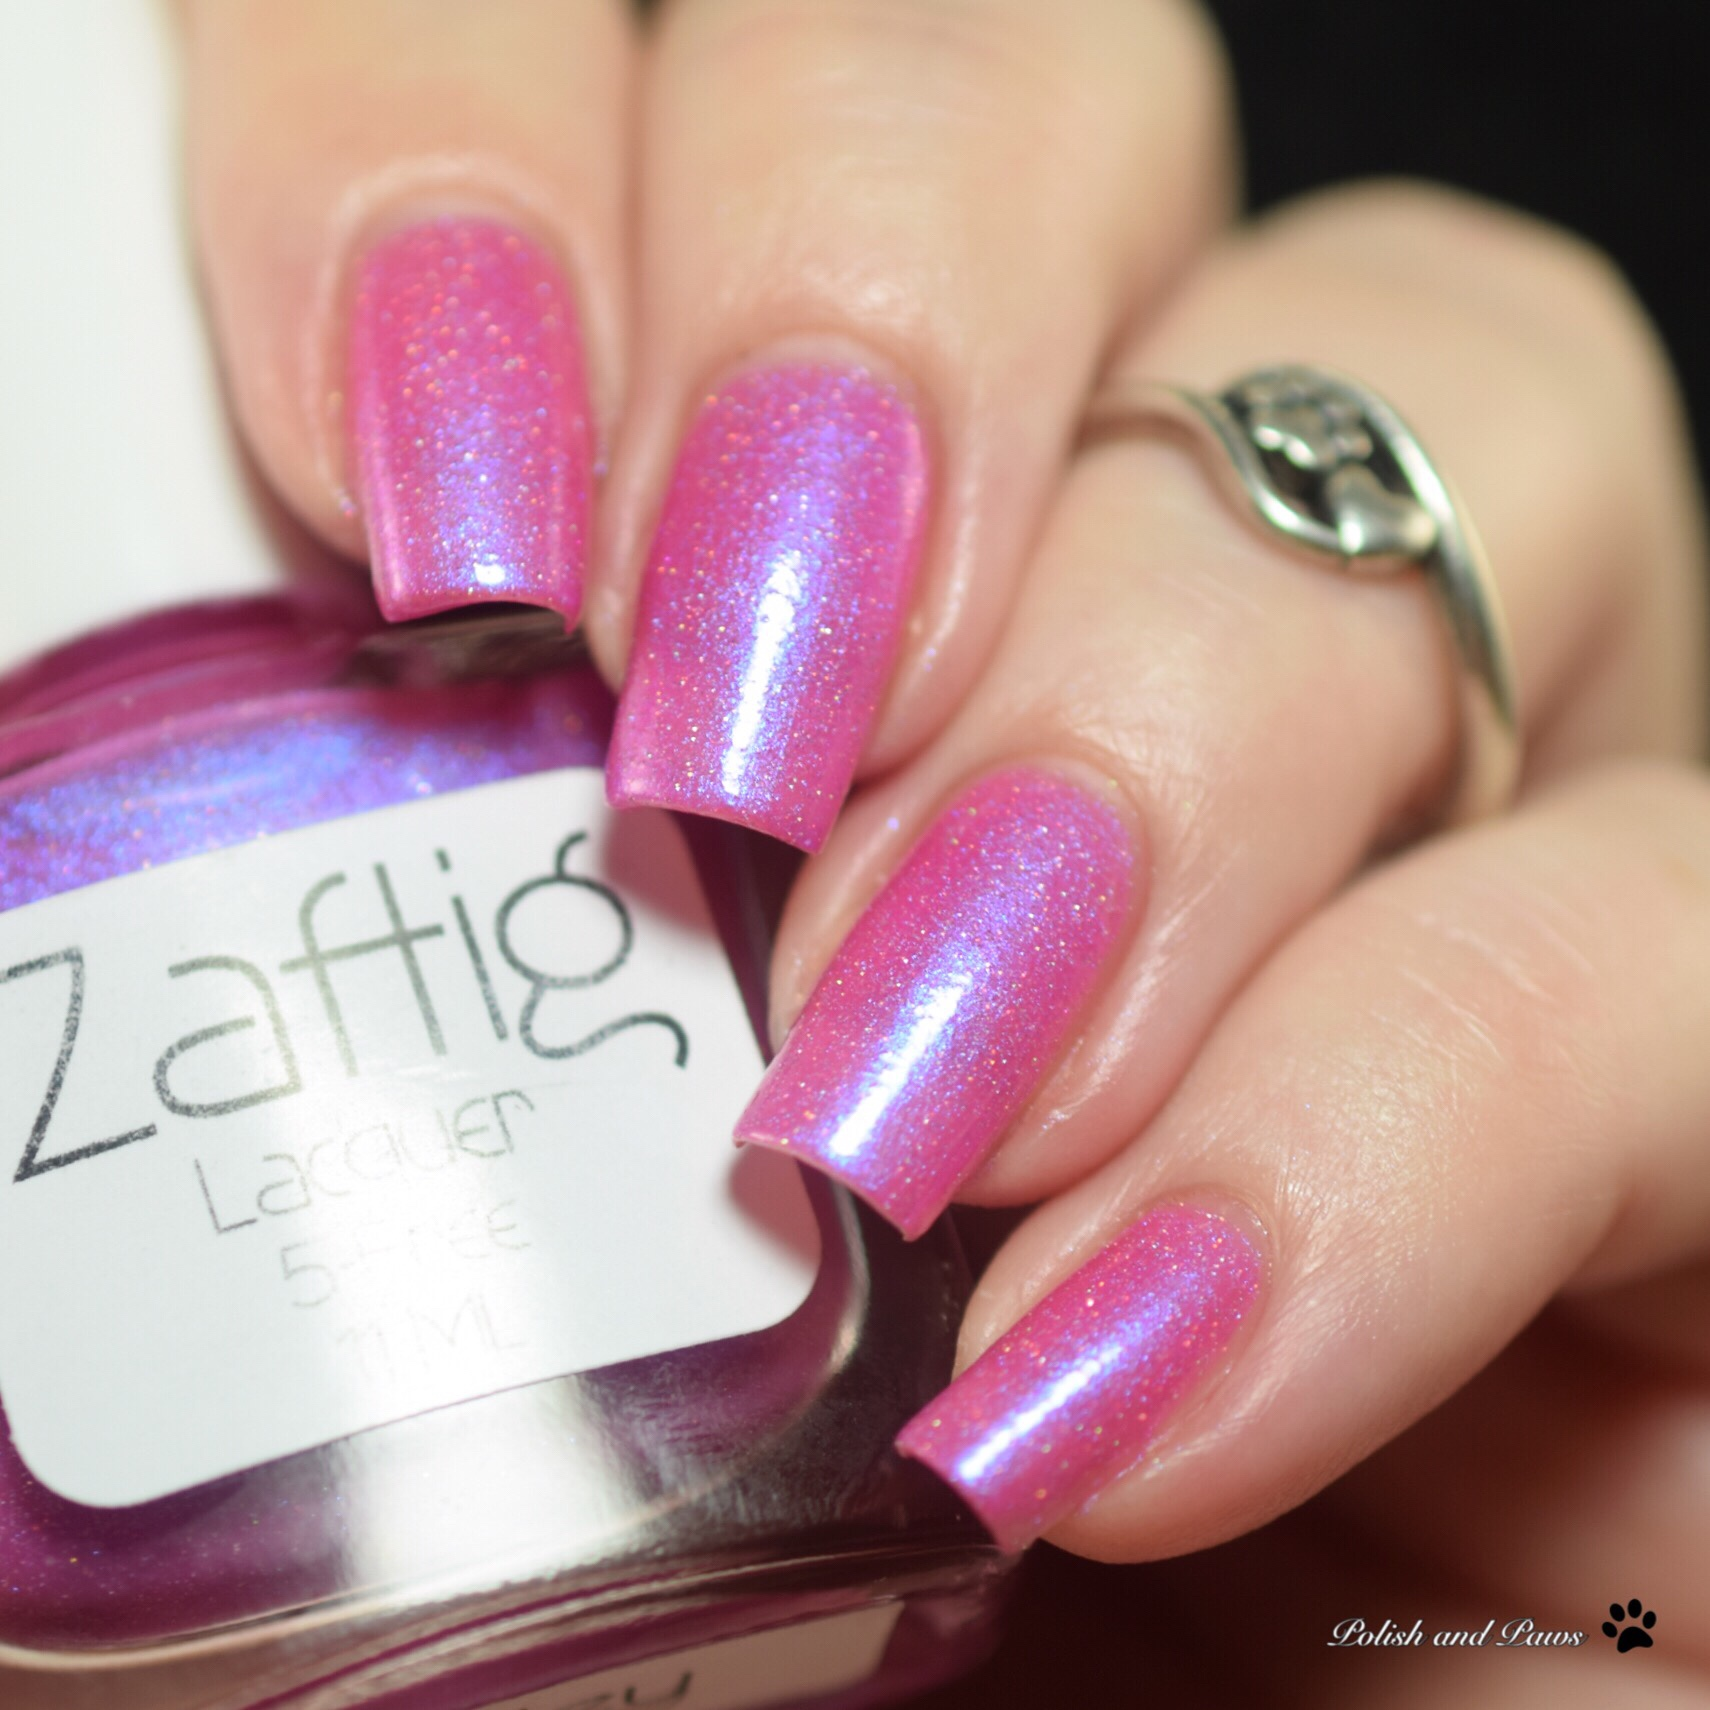 Zaftig Lacquer Ashley